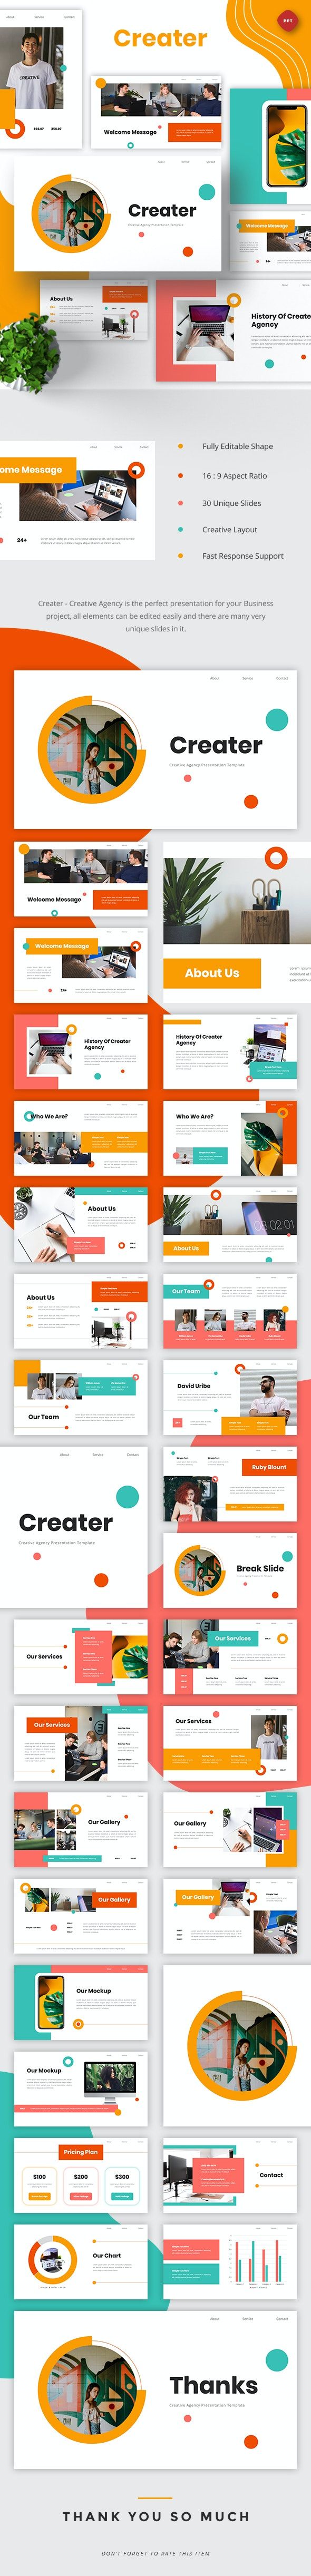 Creater - Creative Agency Powerpoint - Business PowerPoint Templates